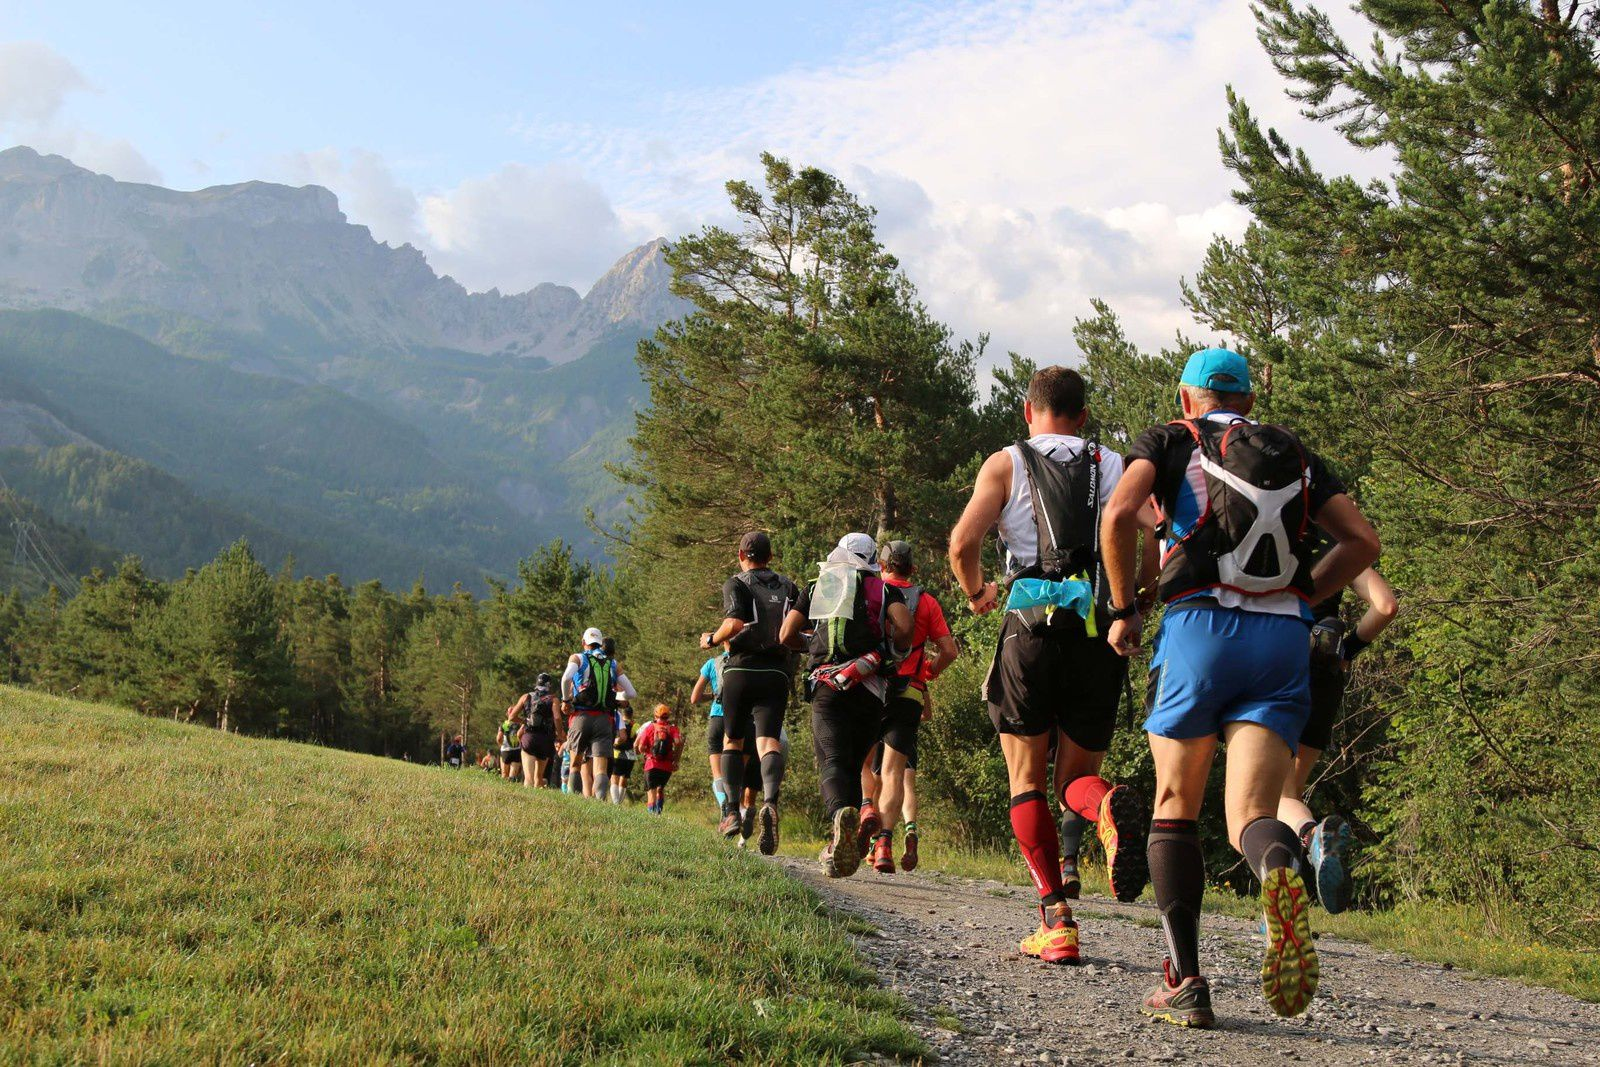 7 août destination Ubaye pour le Salomon Over the Mountain Running Challenge